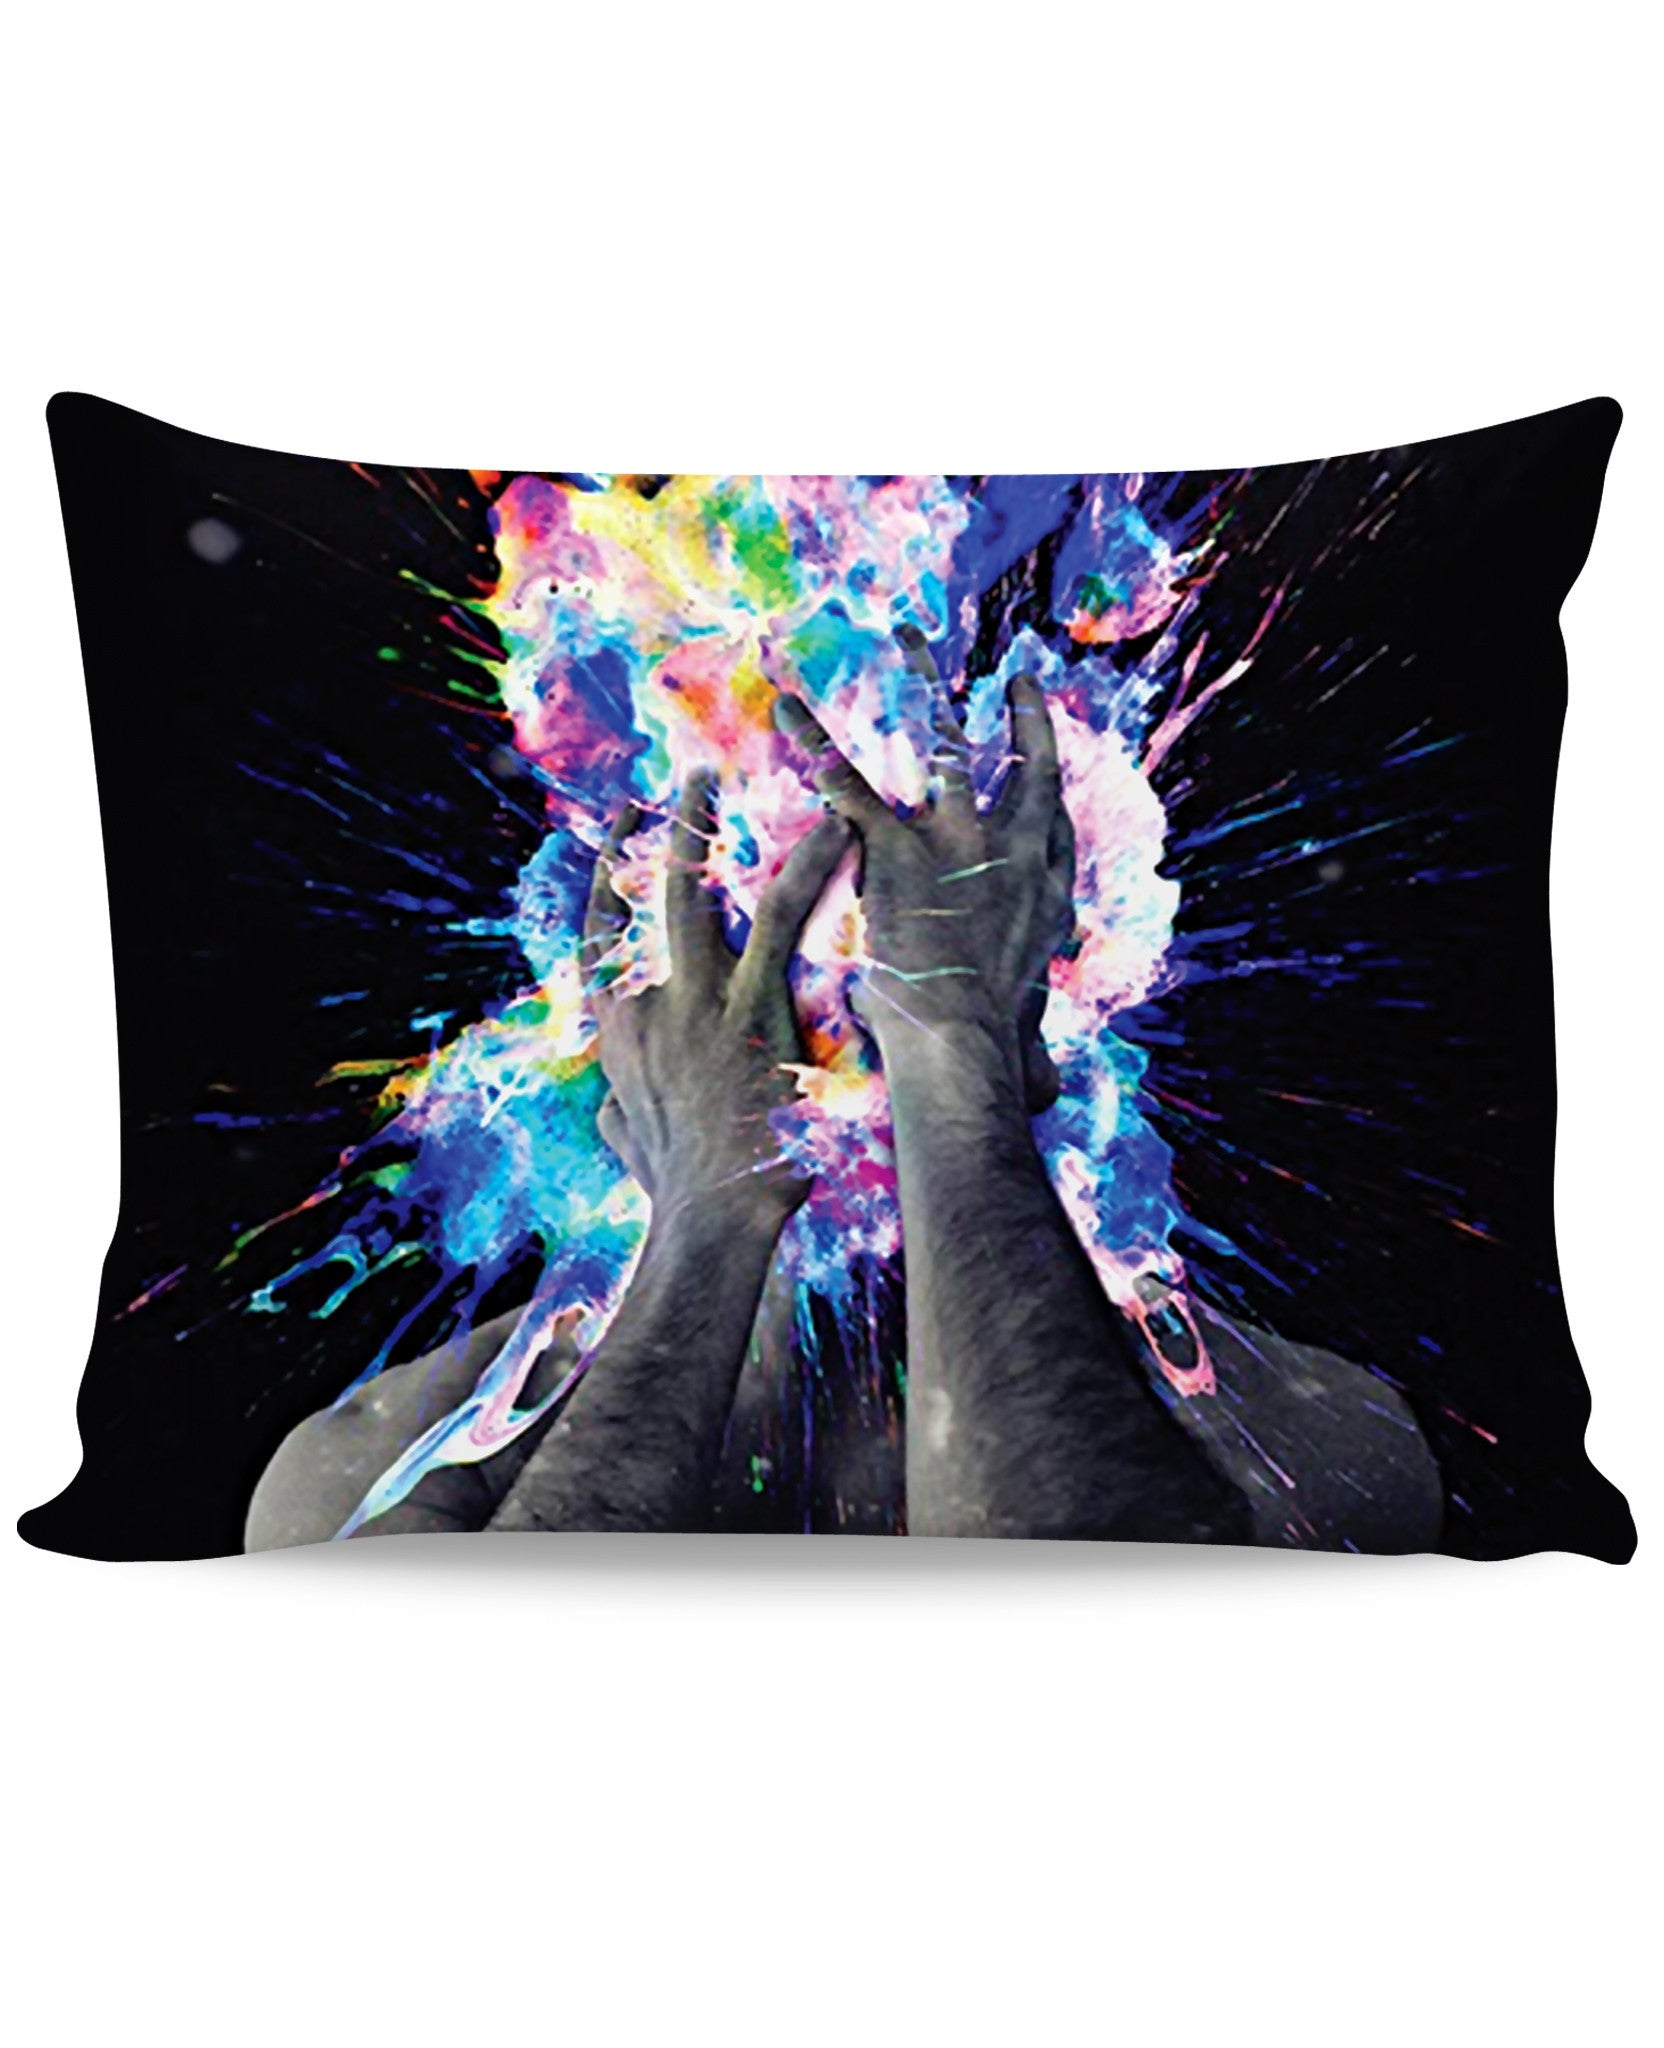 Artistic Bomb Pillow Case - TShirtsRUS.co